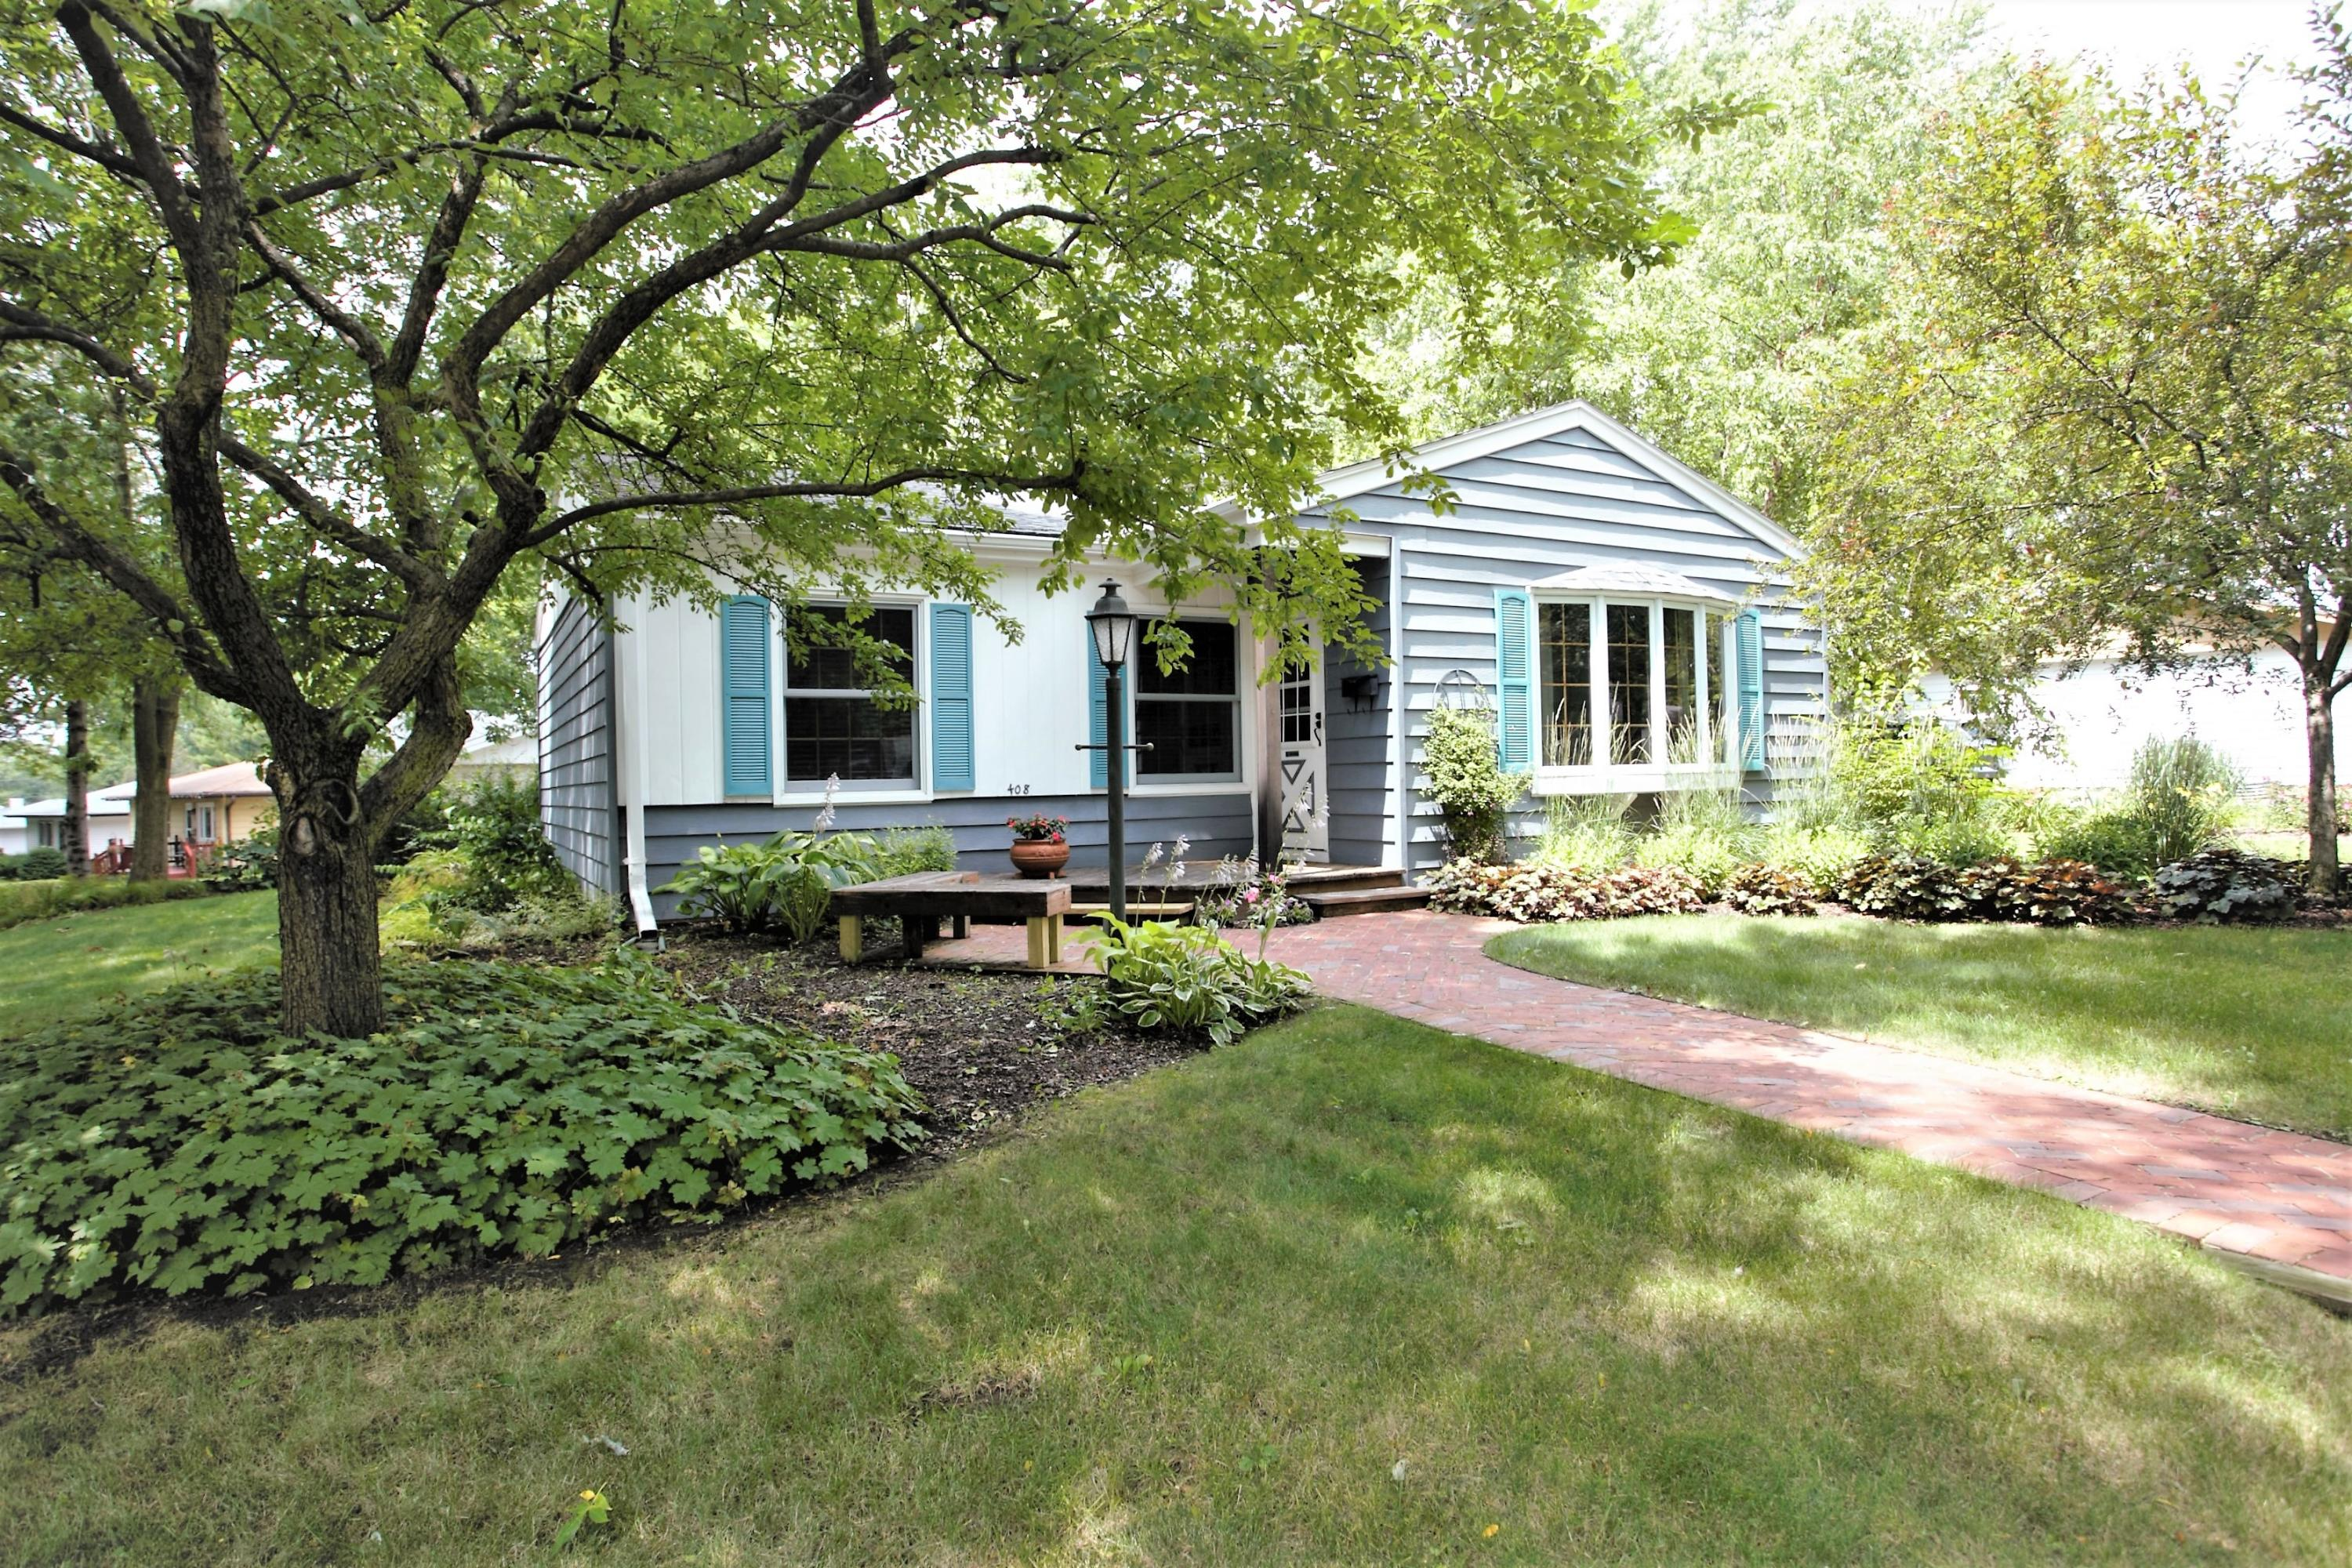 408 Western Ave, Waukesha, Wisconsin 53188, 3 Bedrooms Bedrooms, 5 Rooms Rooms,1 BathroomBathrooms,Single-Family,For Sale,Western Ave,1650259